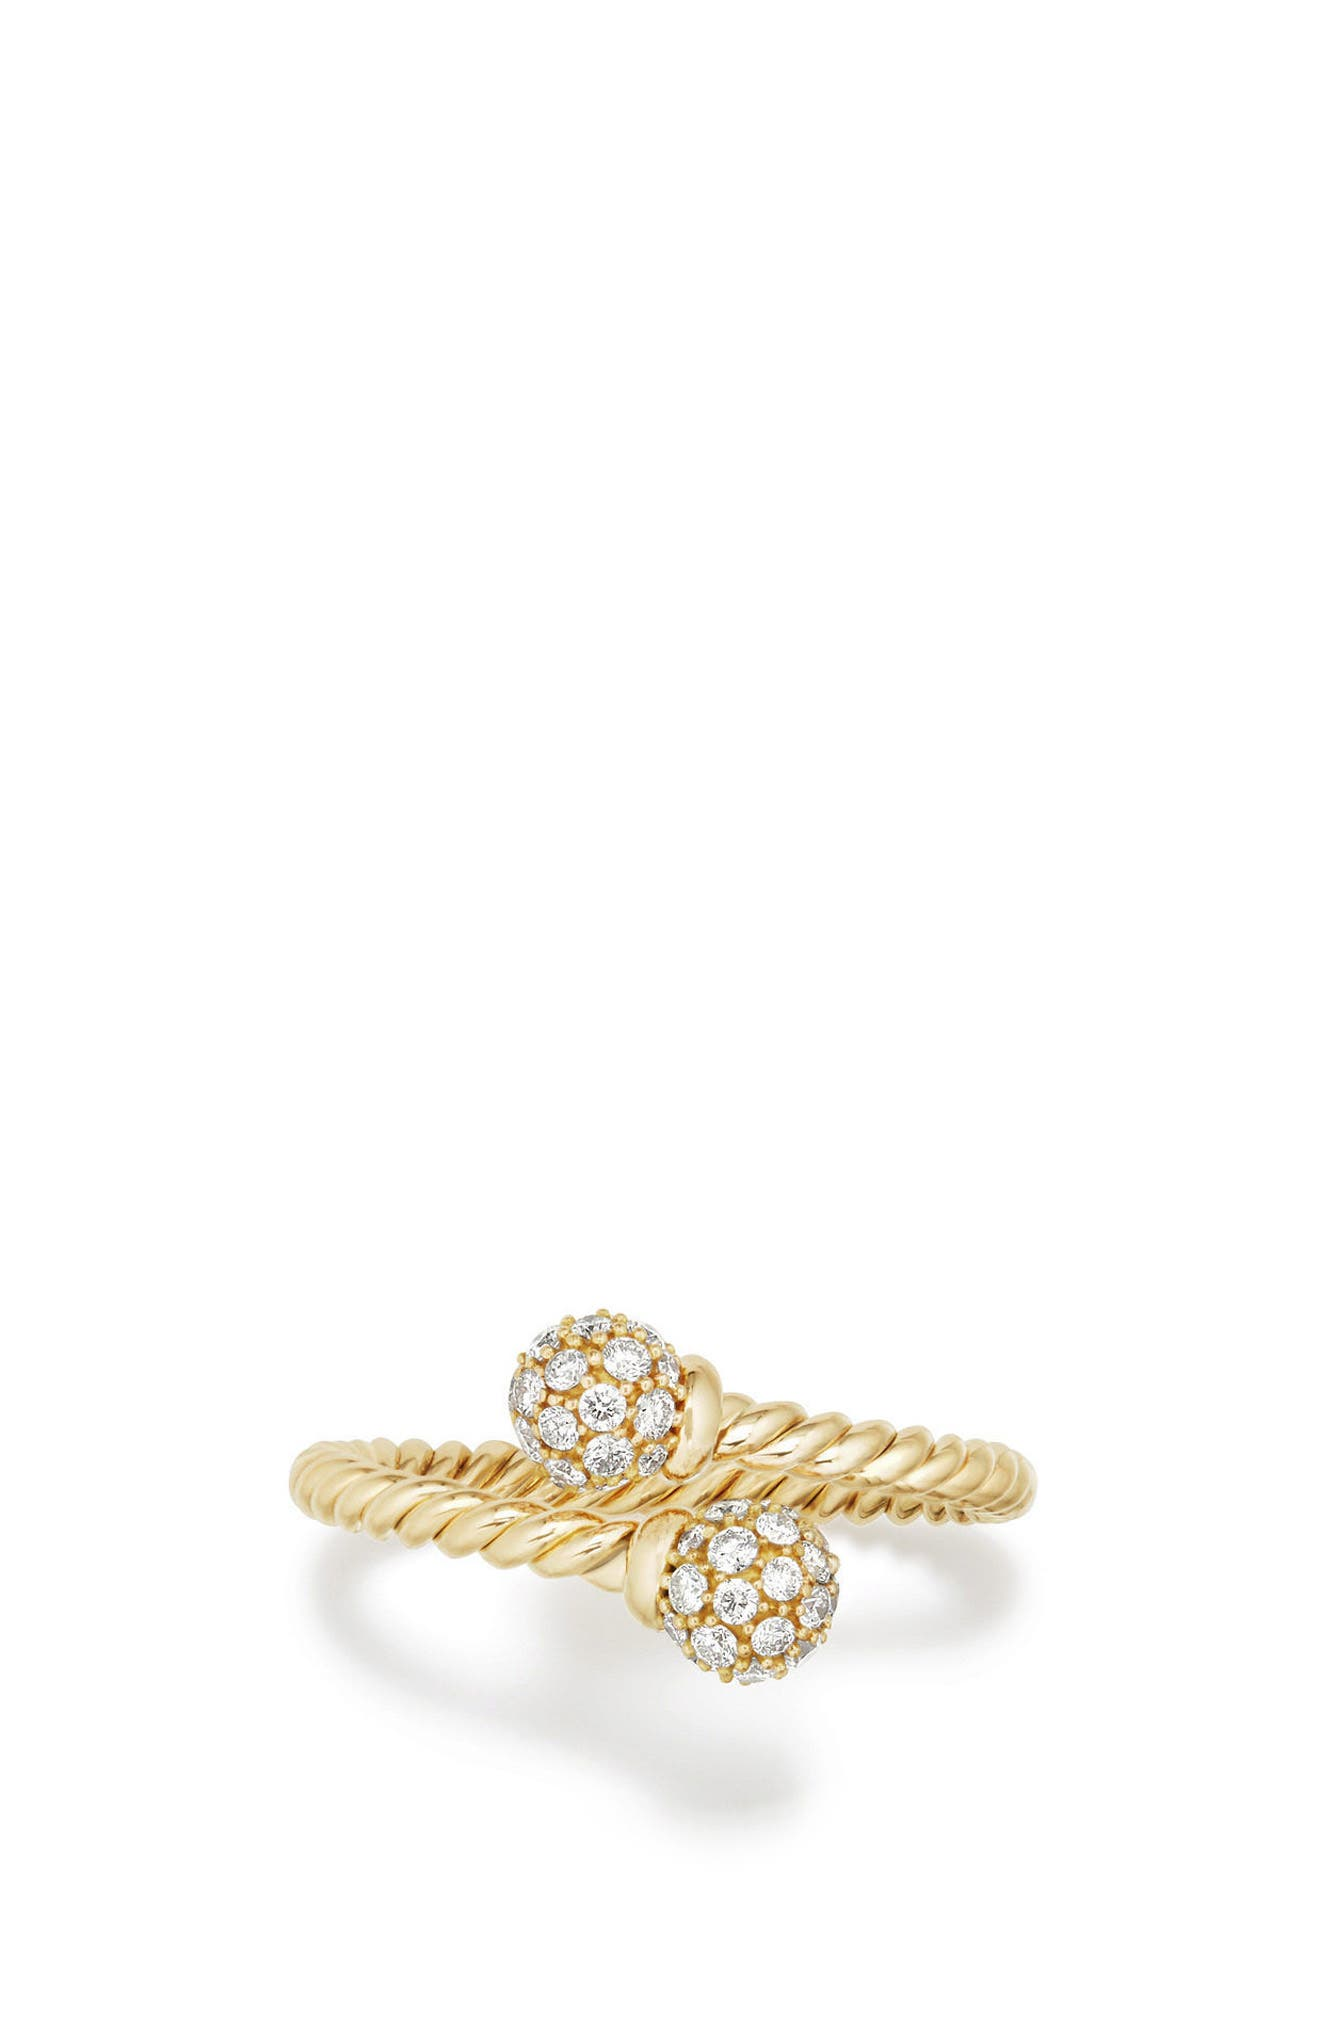 David Yurman Petite Solari Bypass Ring with Diamonds in 18K Gold